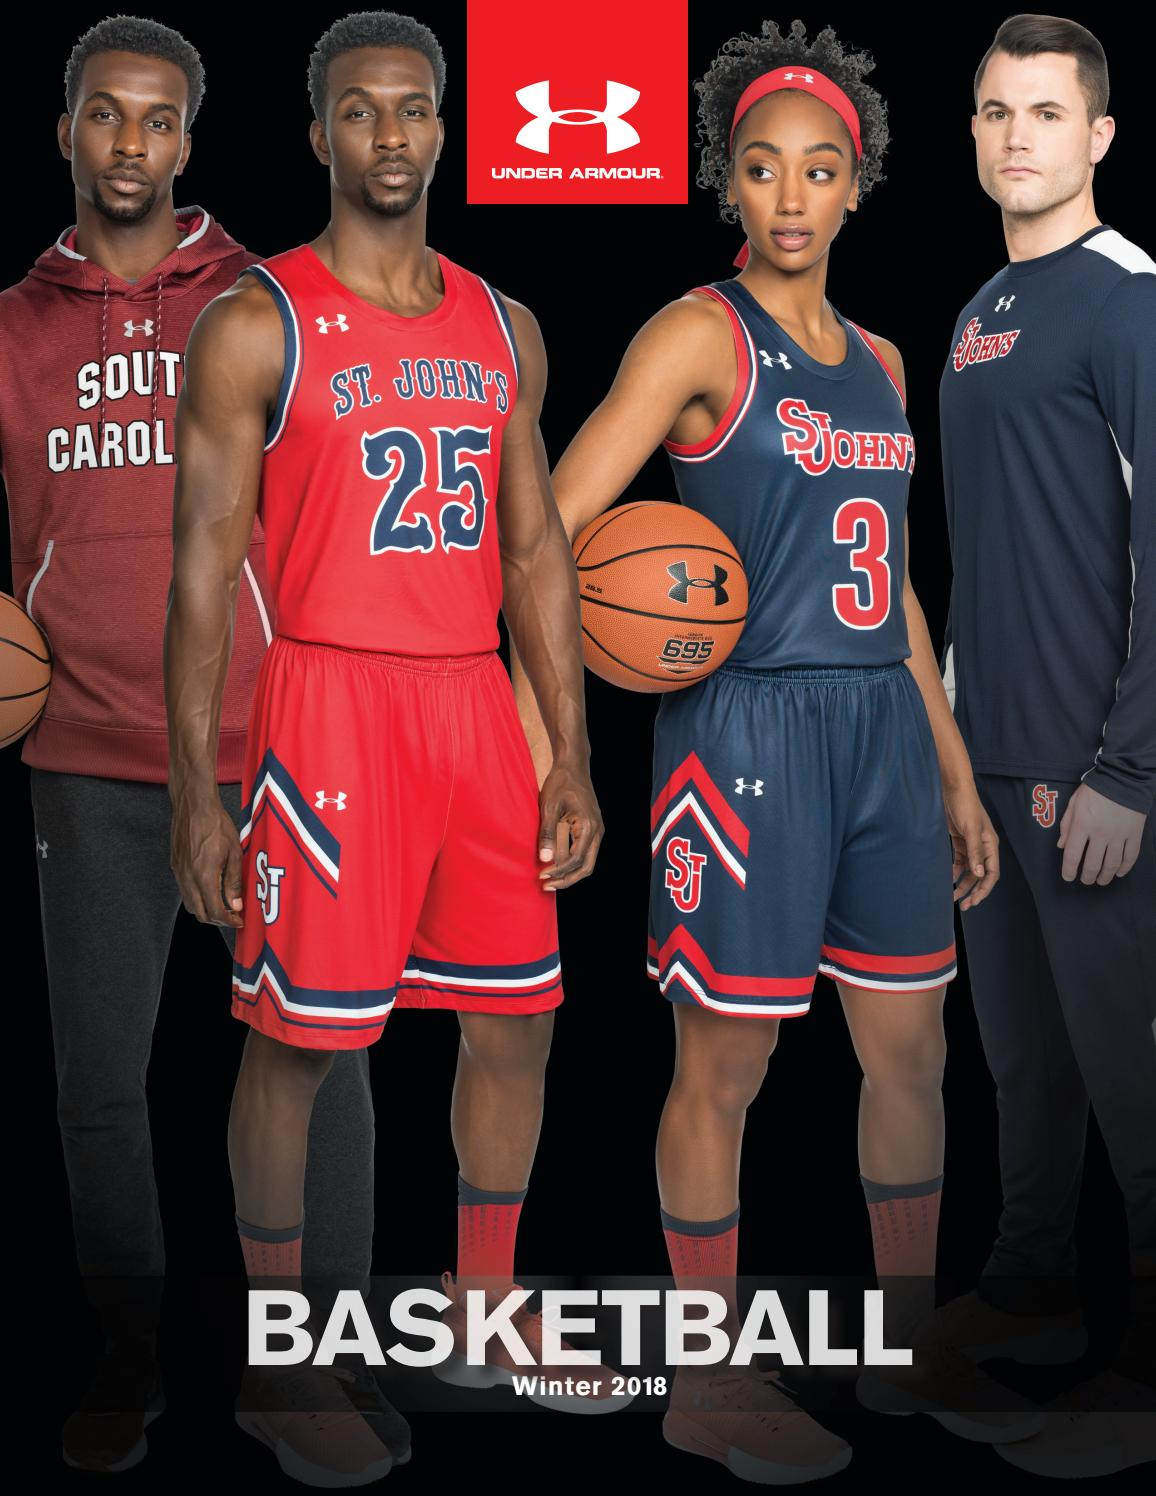 61762618ab26 Under Armour Basketball Winter 2018 by Team Connection - issuu